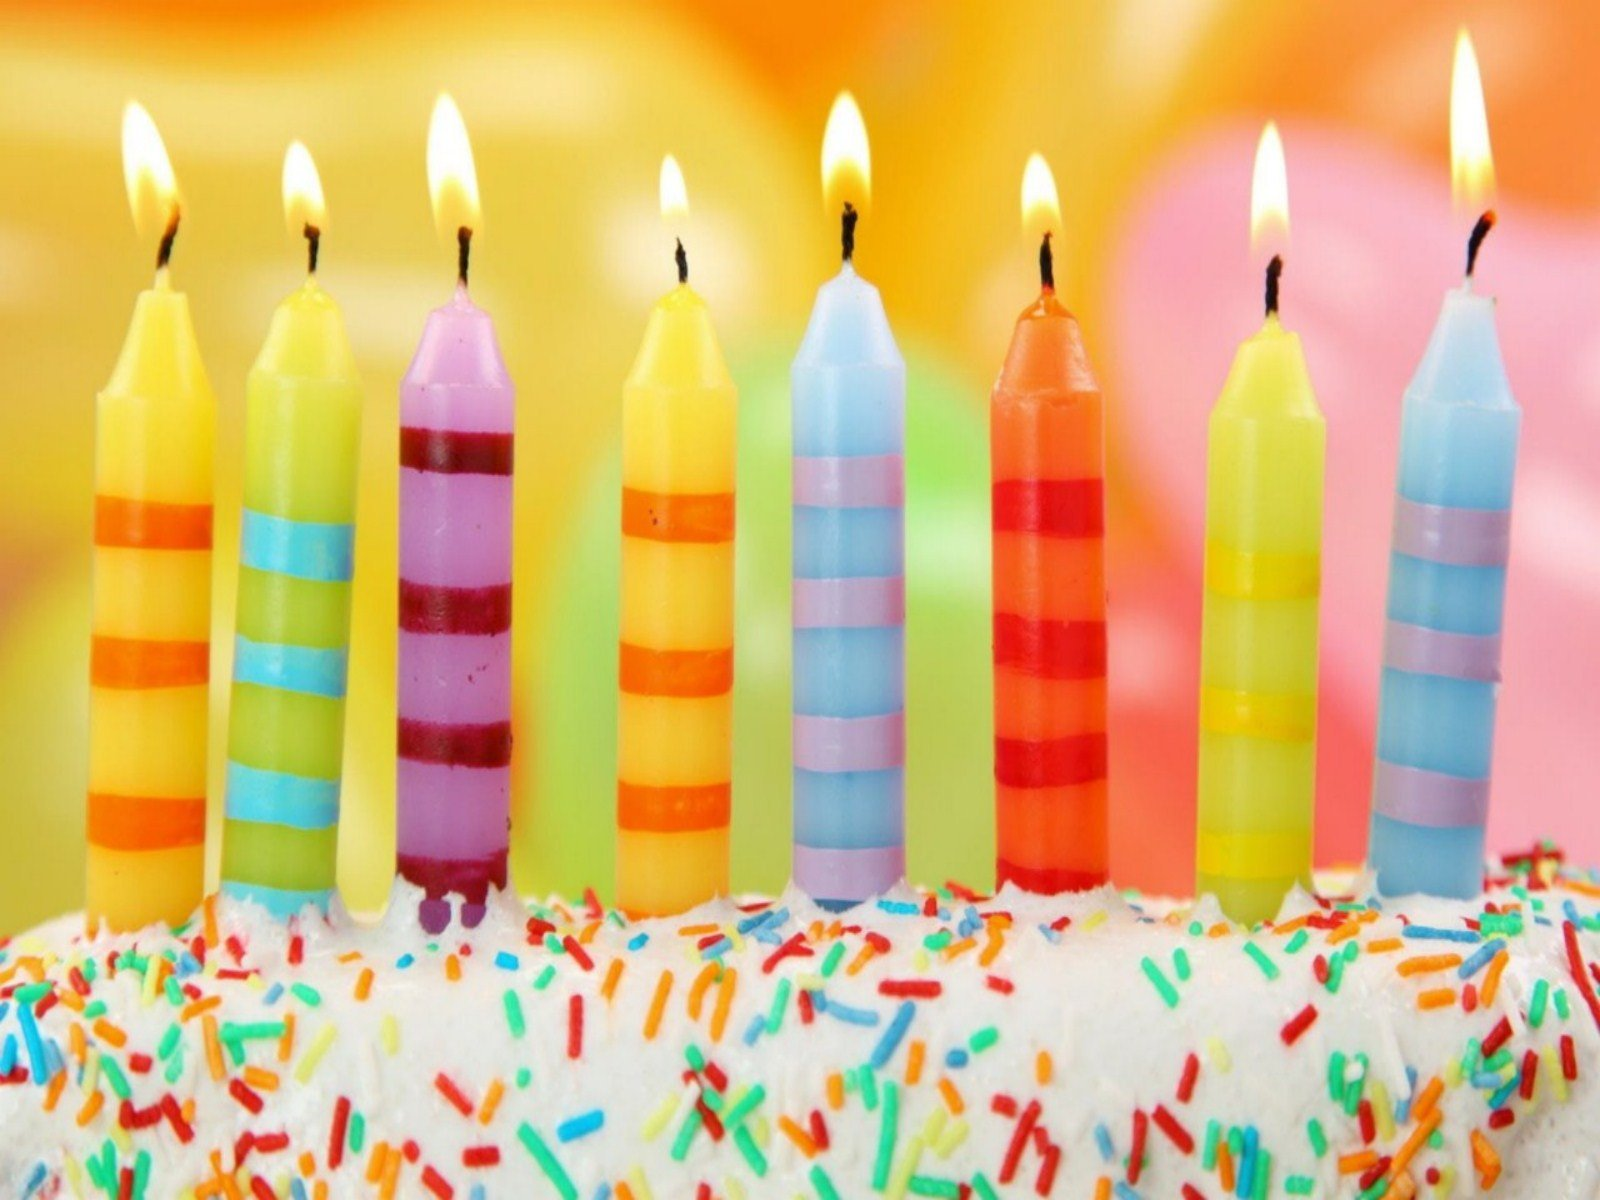 Free birthday background images wallpapersafari - Birthday cards images free download ...